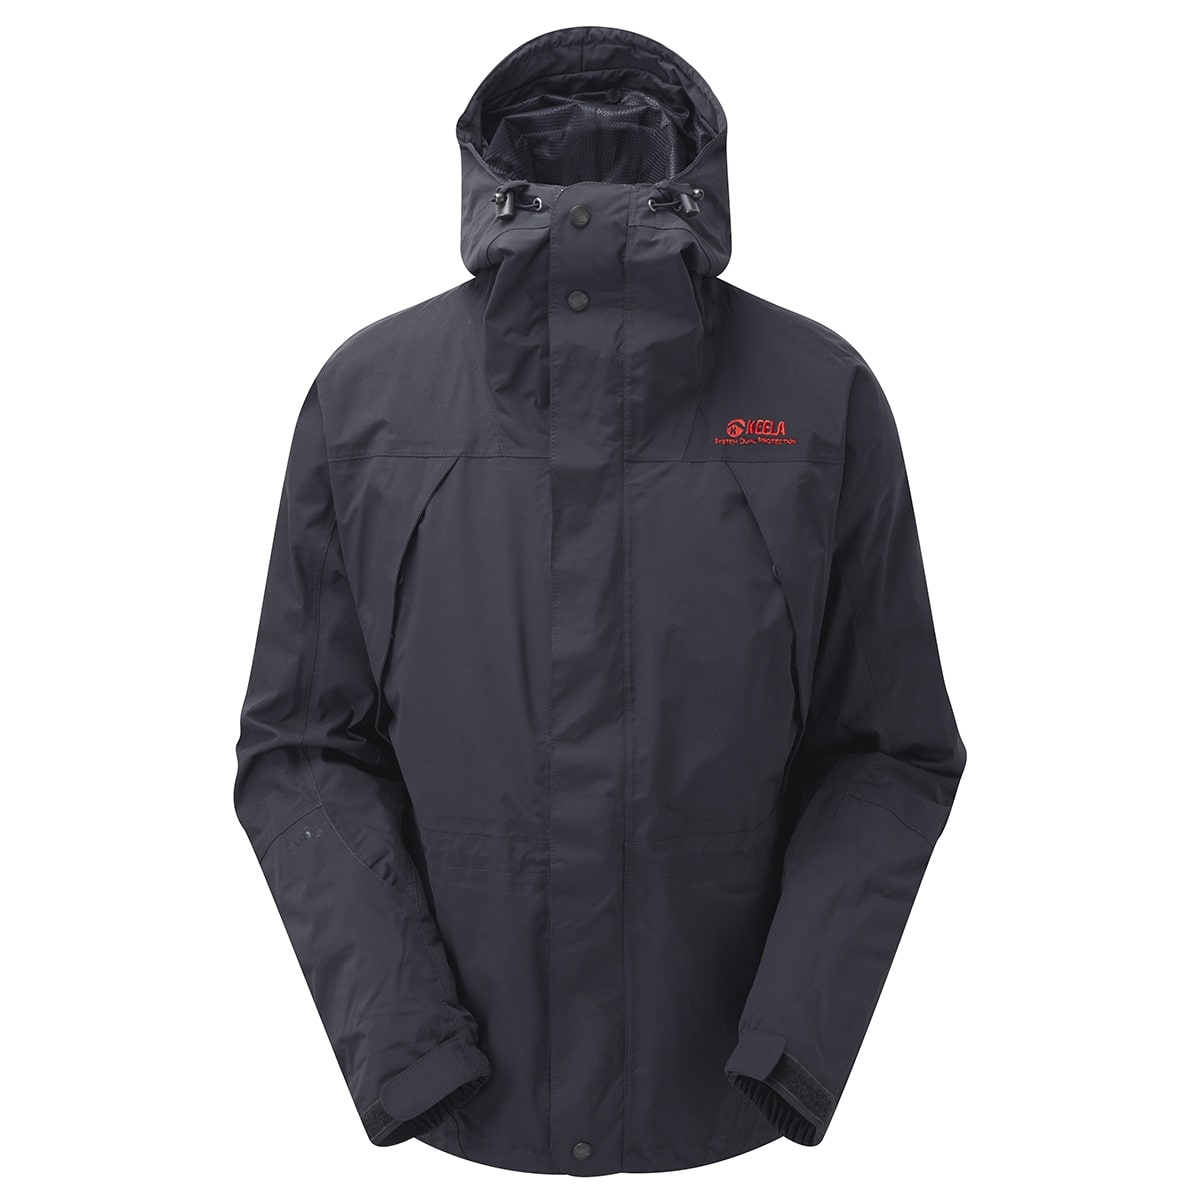 Munro Expedition Jacket - Wolfgrey